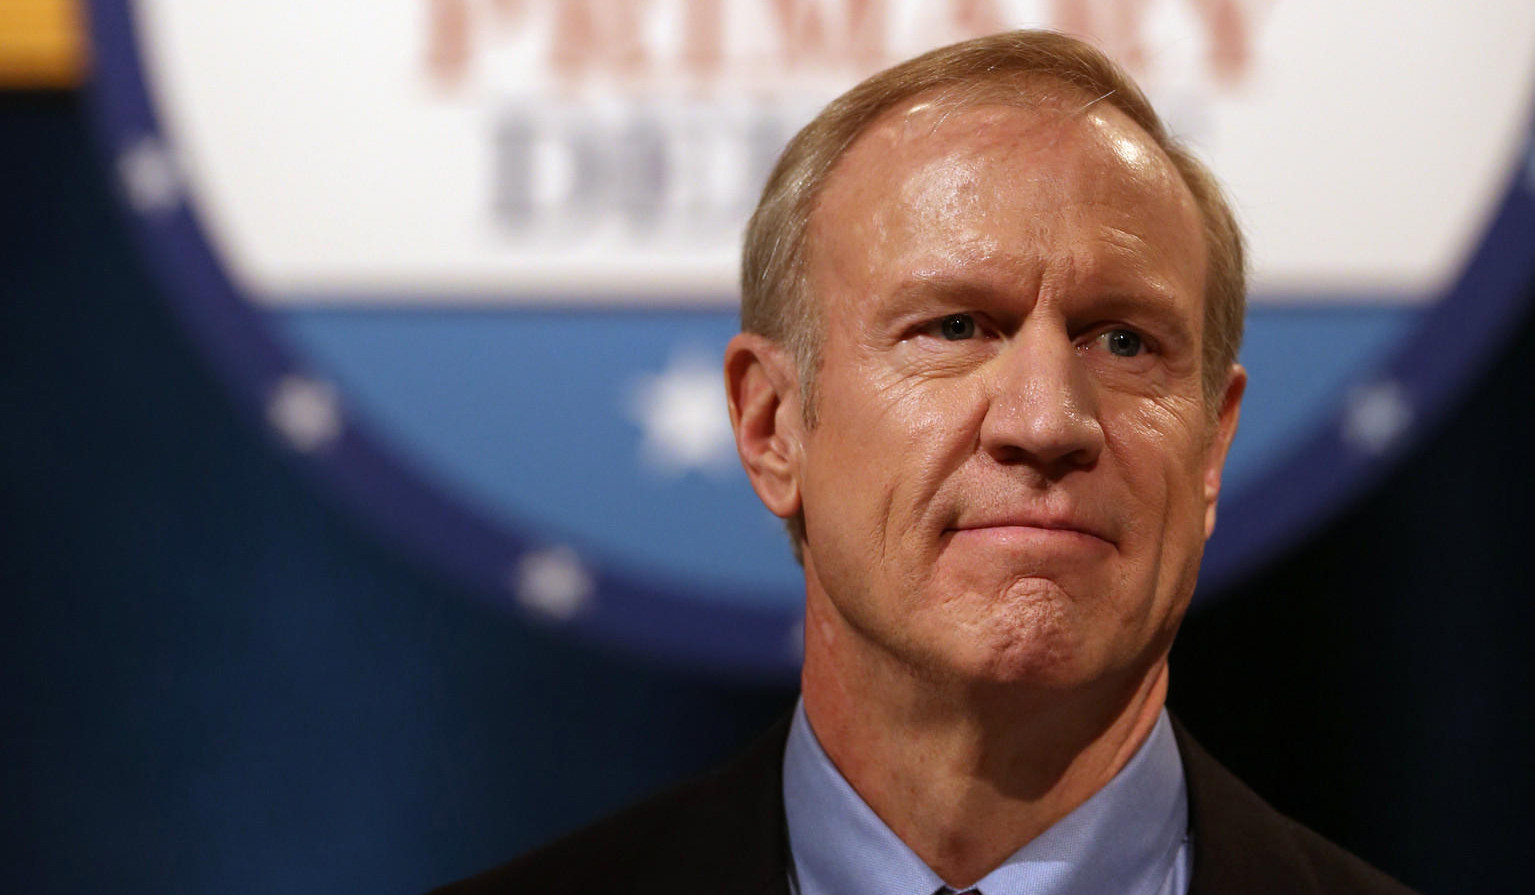 Illinois Senate President: Governor, Please Sign Gun Control Laws